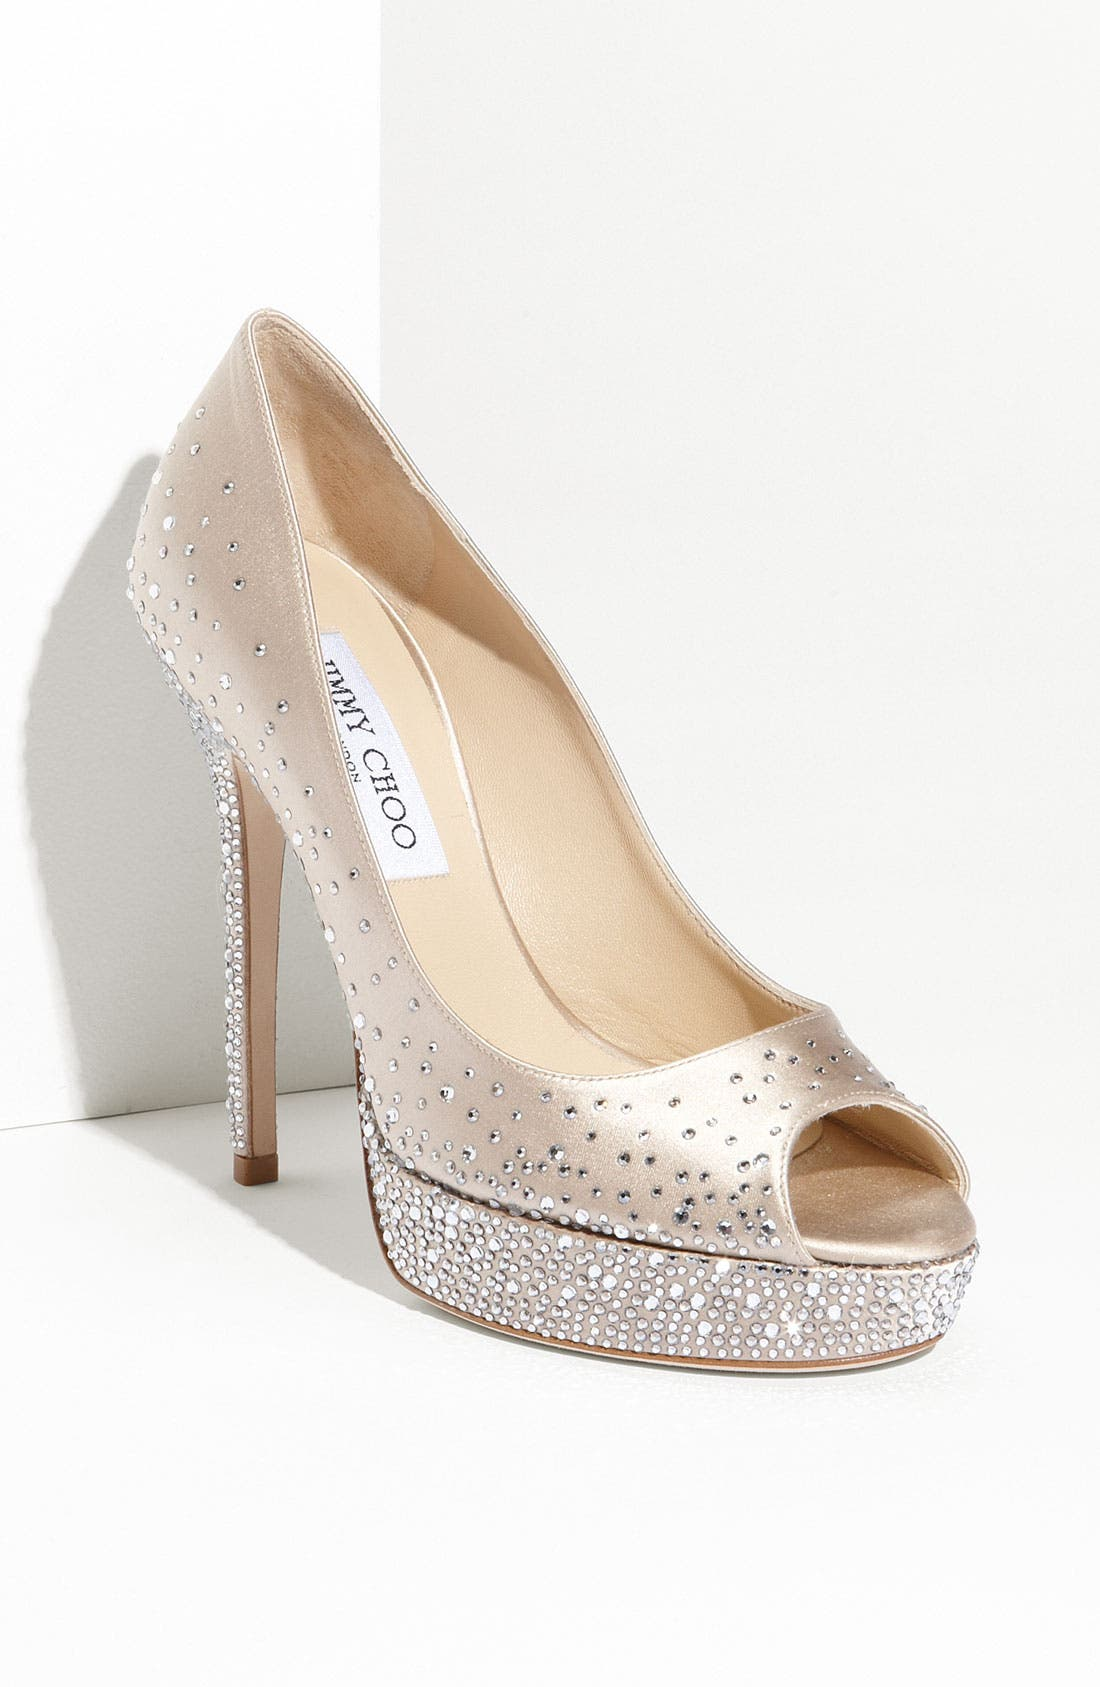 'Salt' Platform Pump,                         Main,                         color, Nude